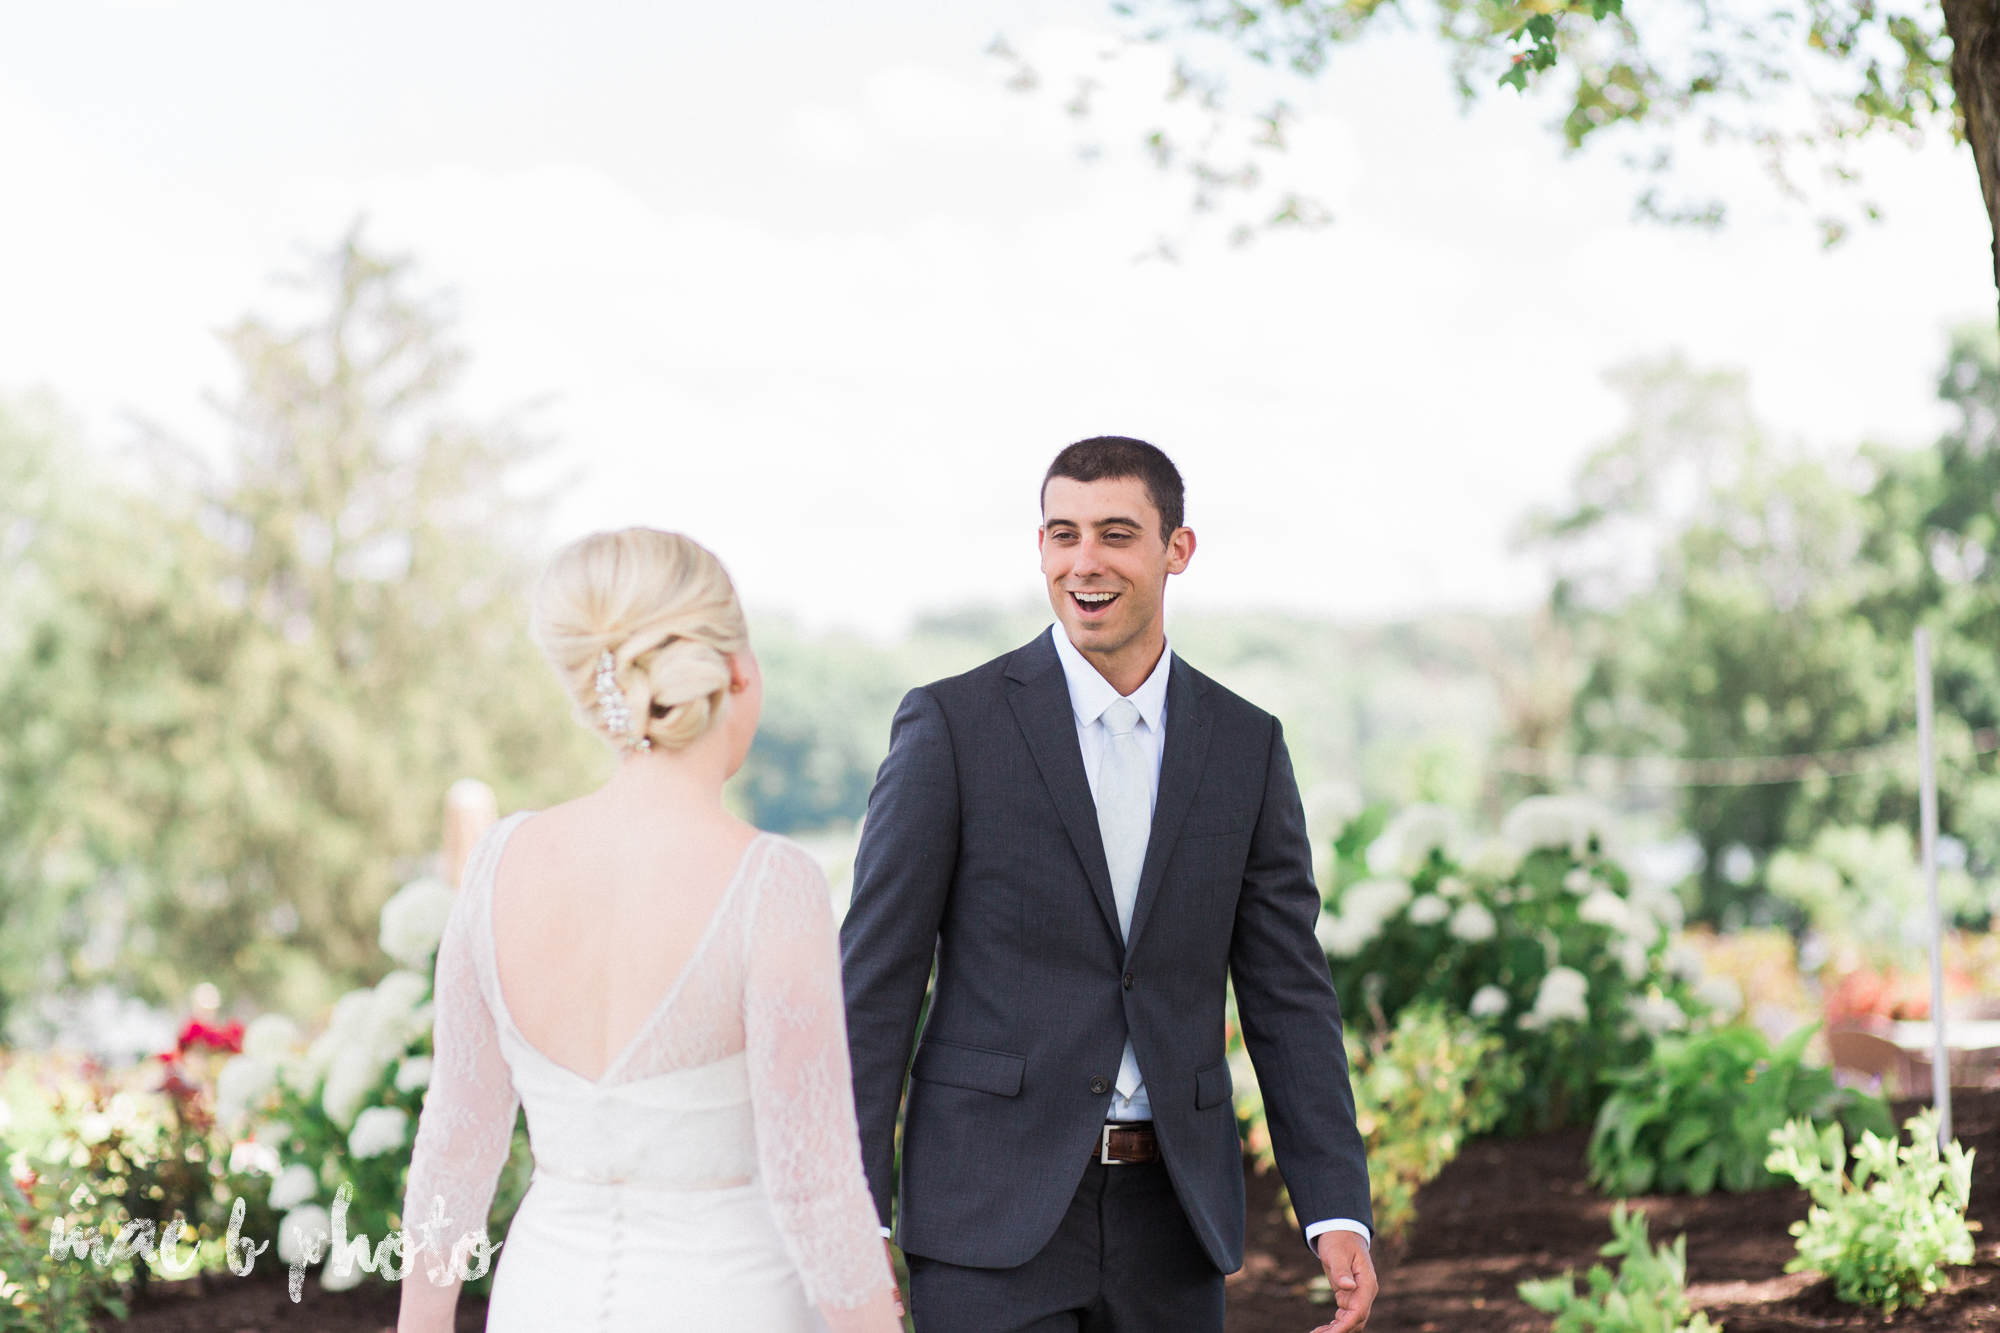 emily and michael's industrial chic summer country club wedding at the lake club in poland ohio photographed by cleveland wedding photographer mae b photo-10.jpg